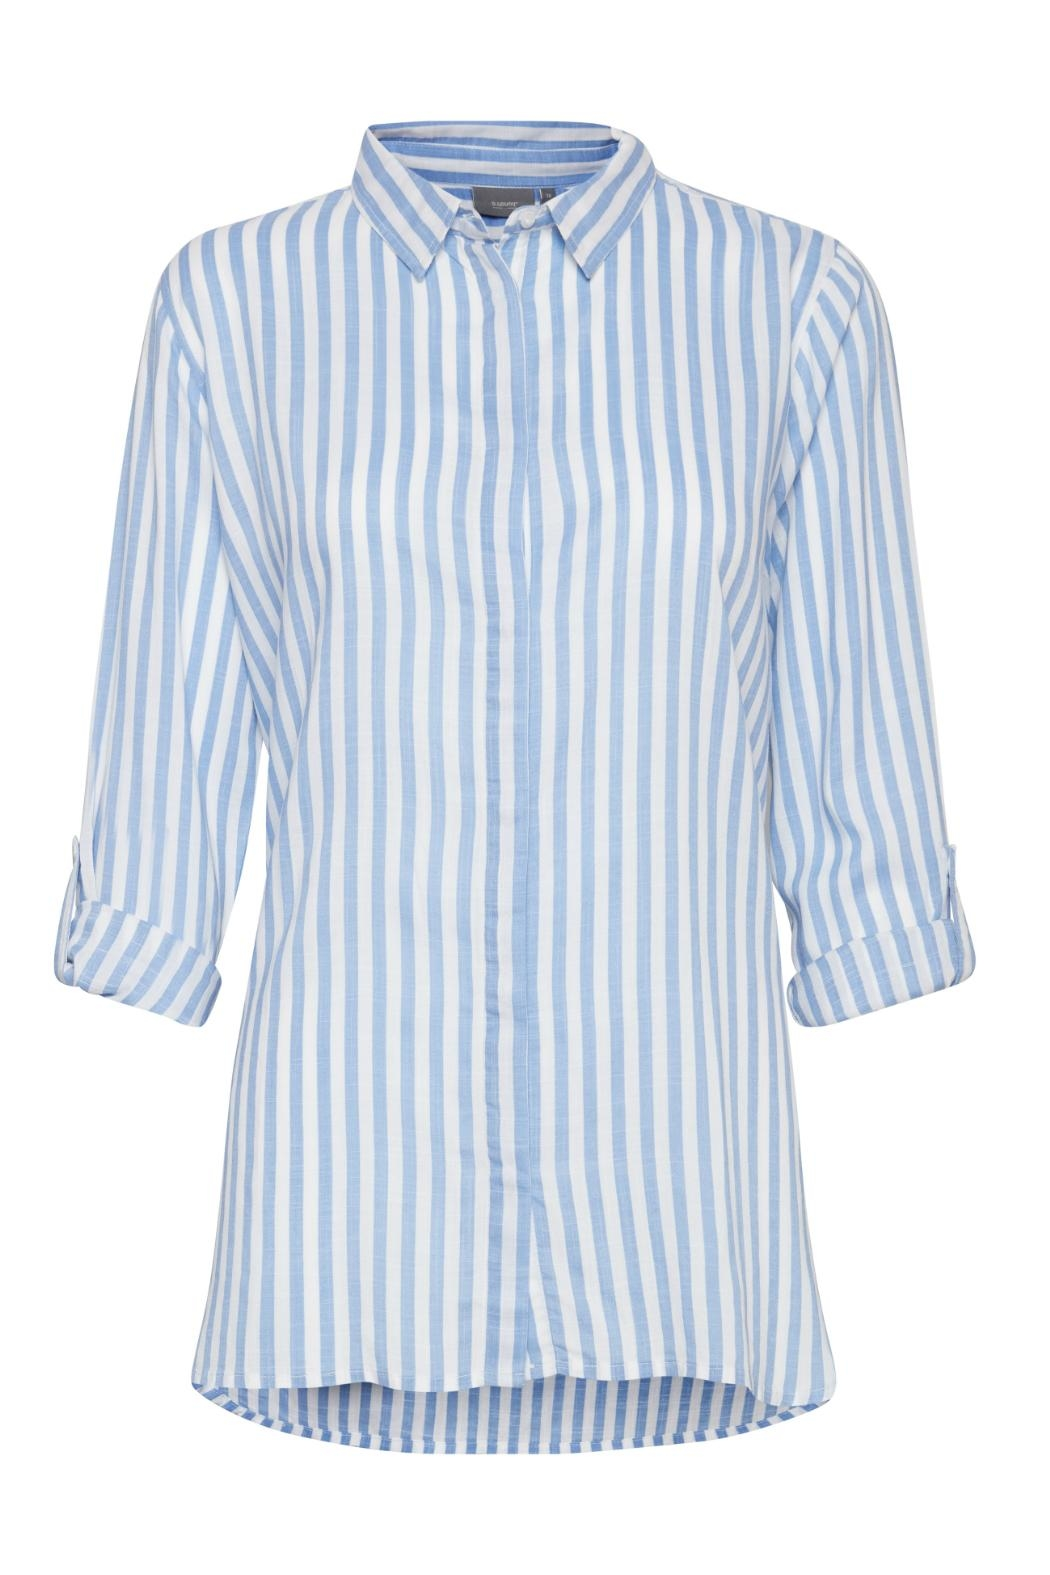 B.young Stripe Shirt - Front Full Image